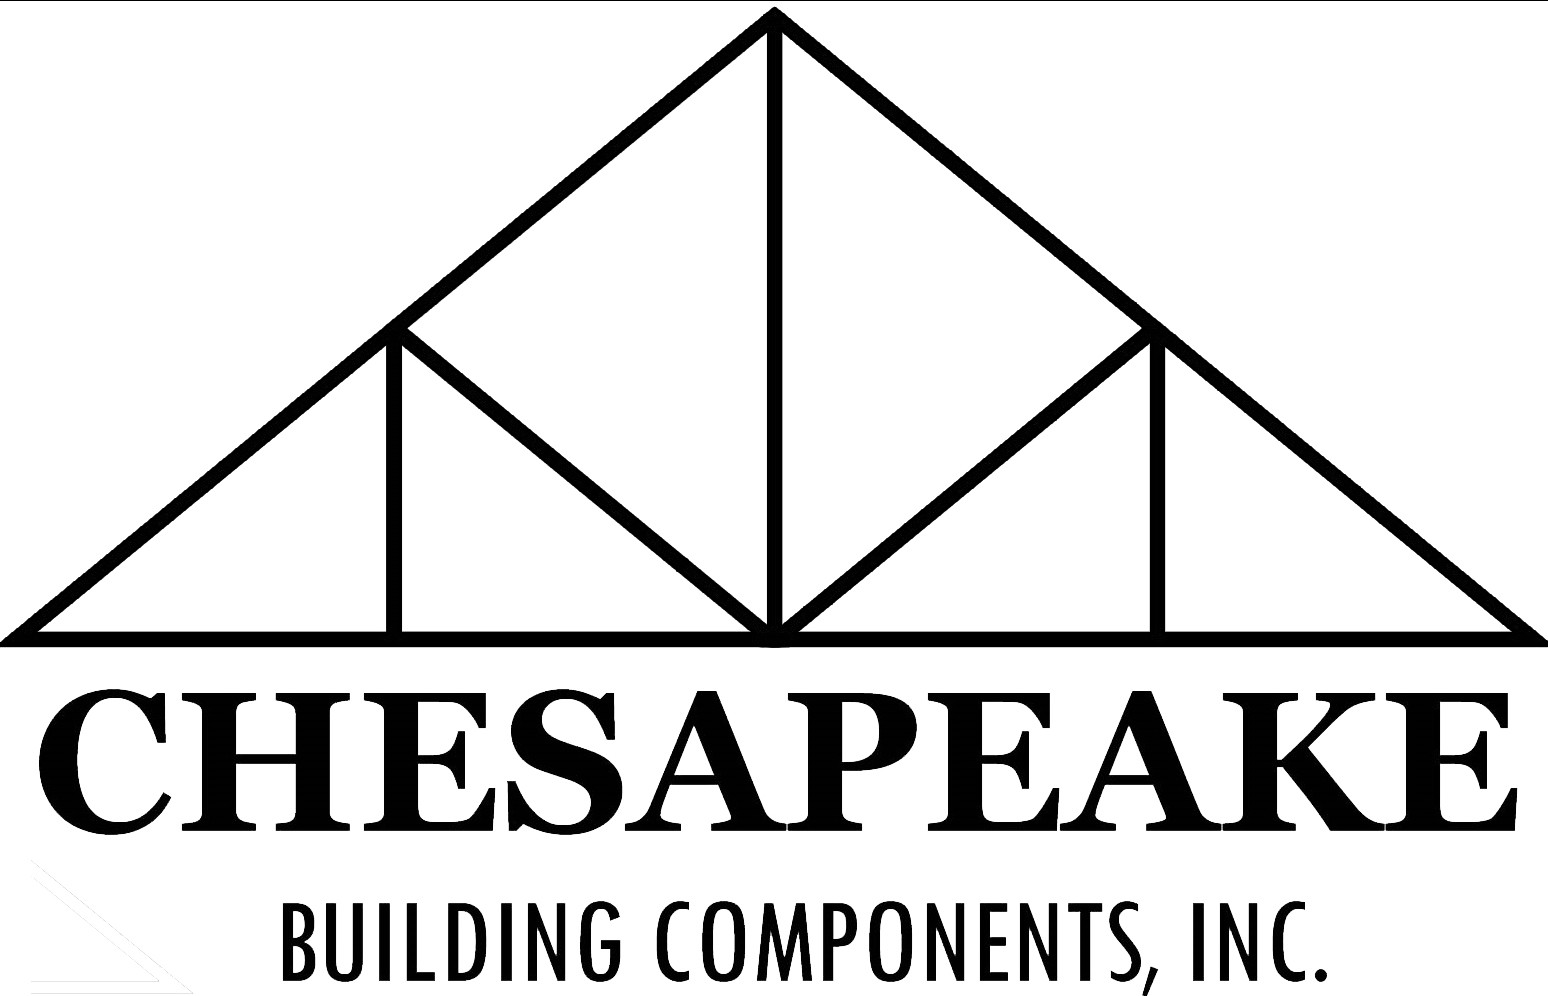 Chesapeake Building Components